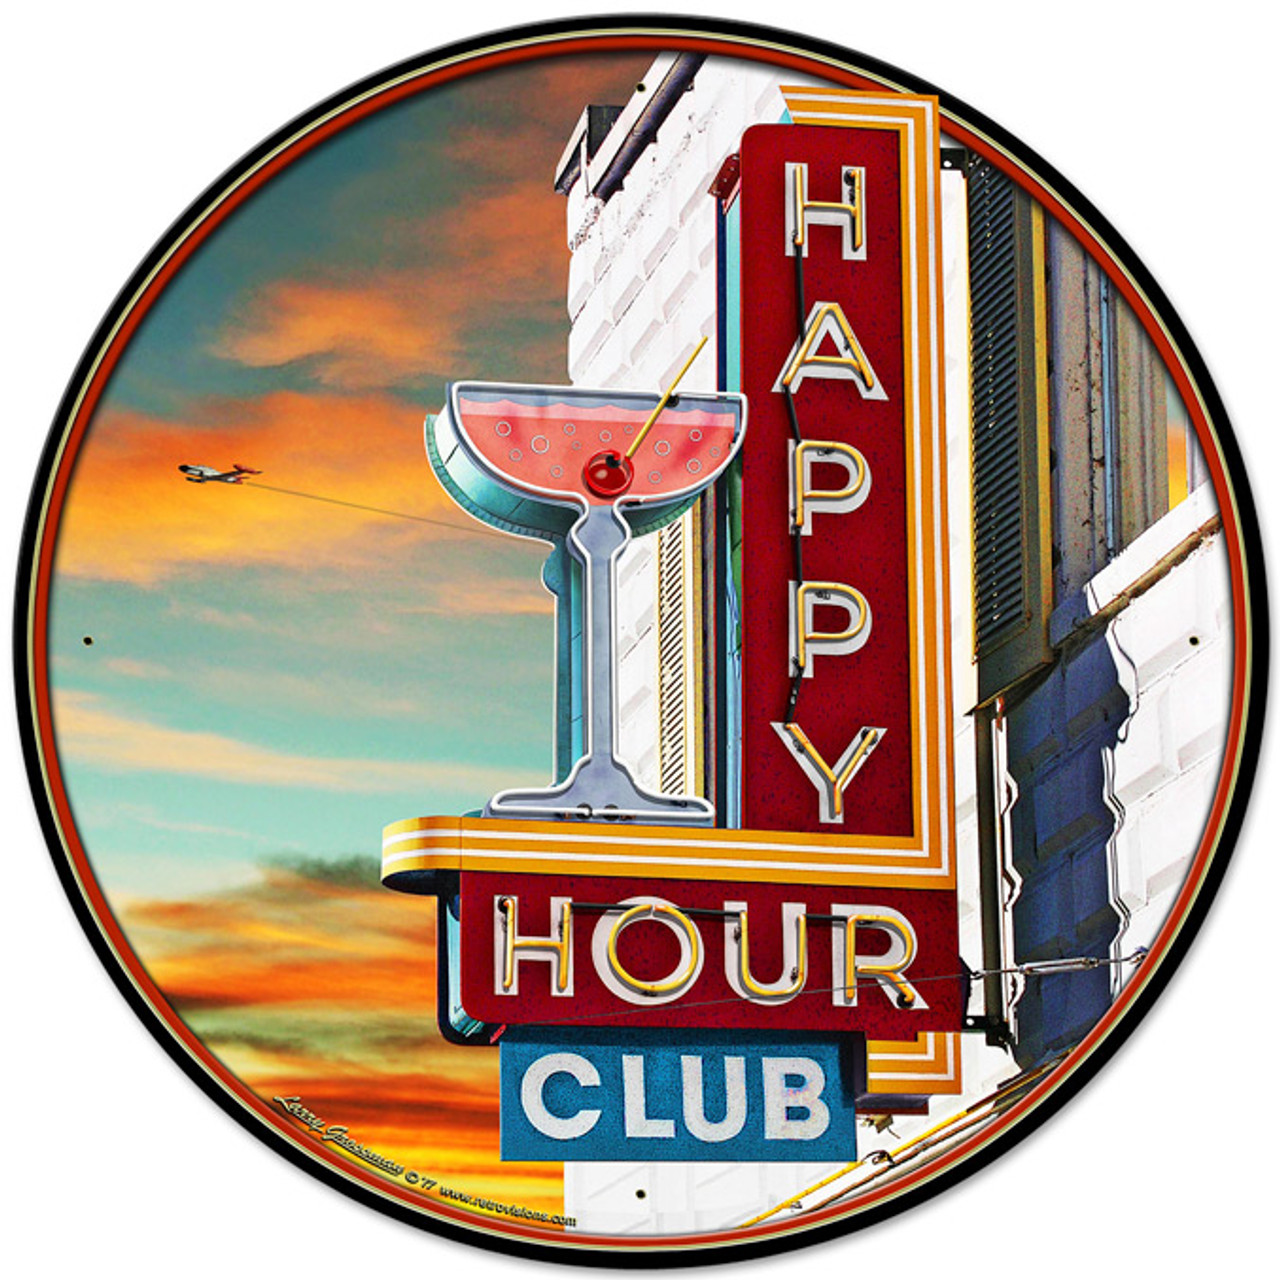 Happy Hour Club Metal Sign 28 x 28 Inches